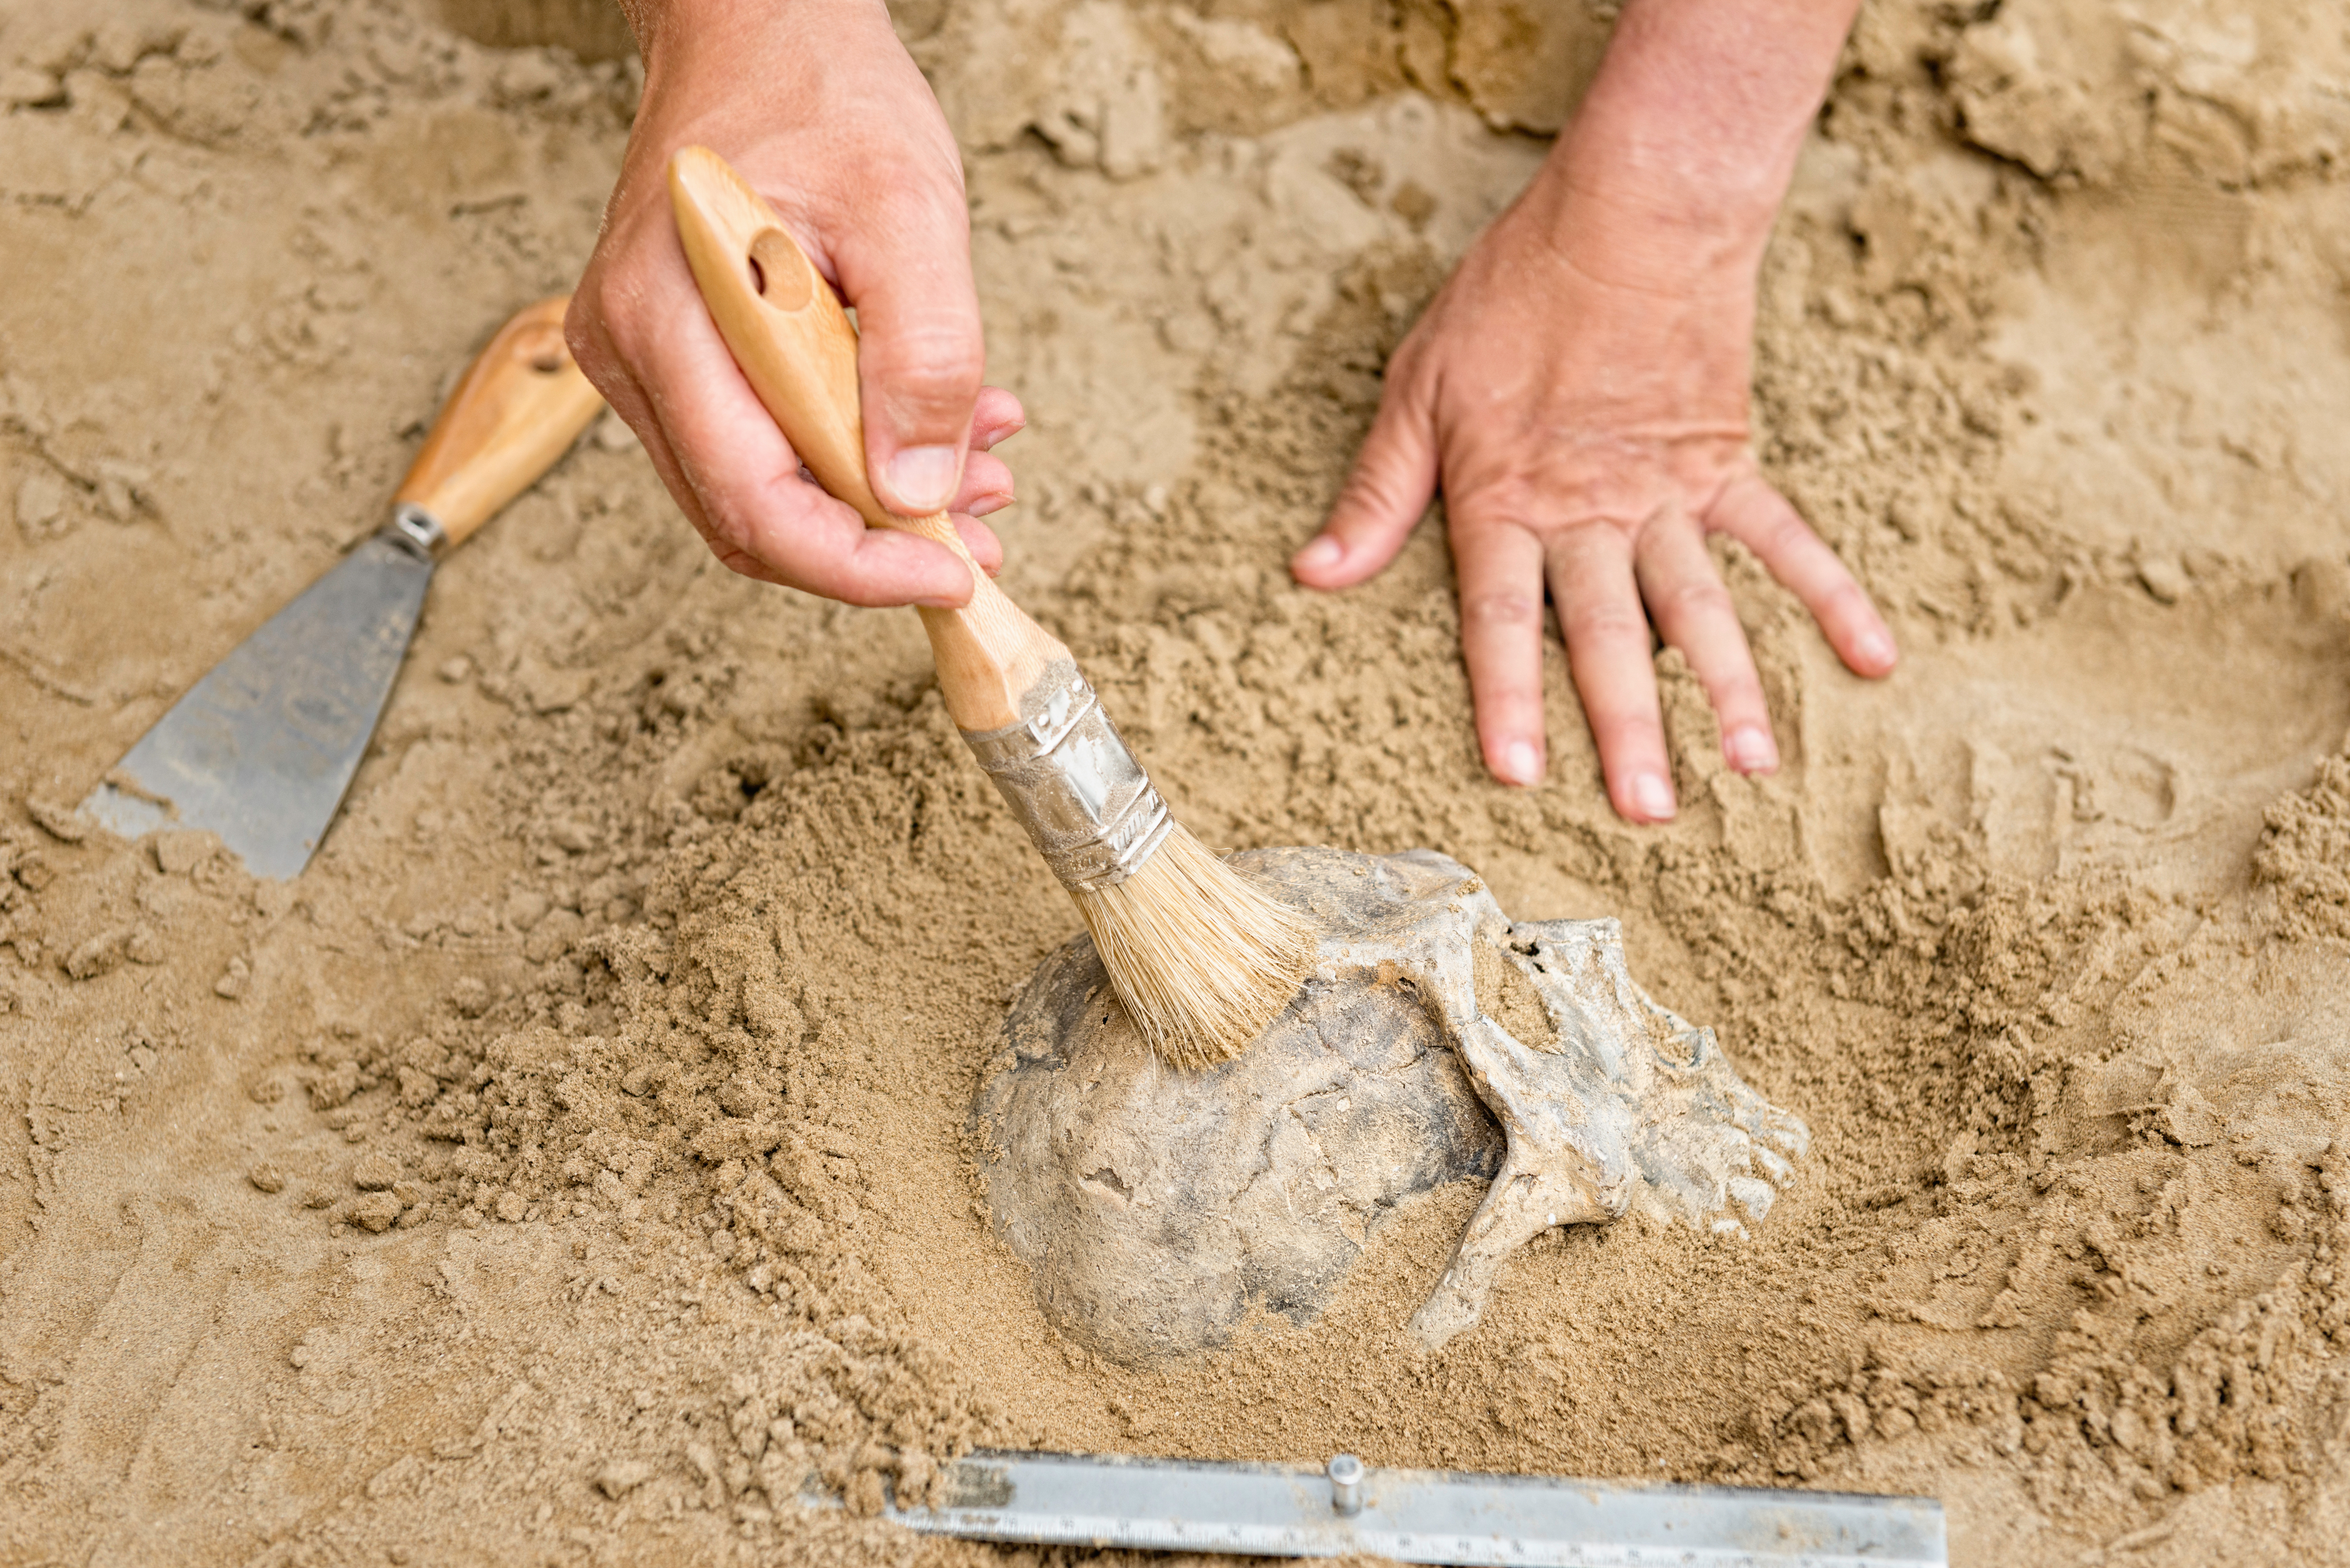 Archeologist uncovers skull